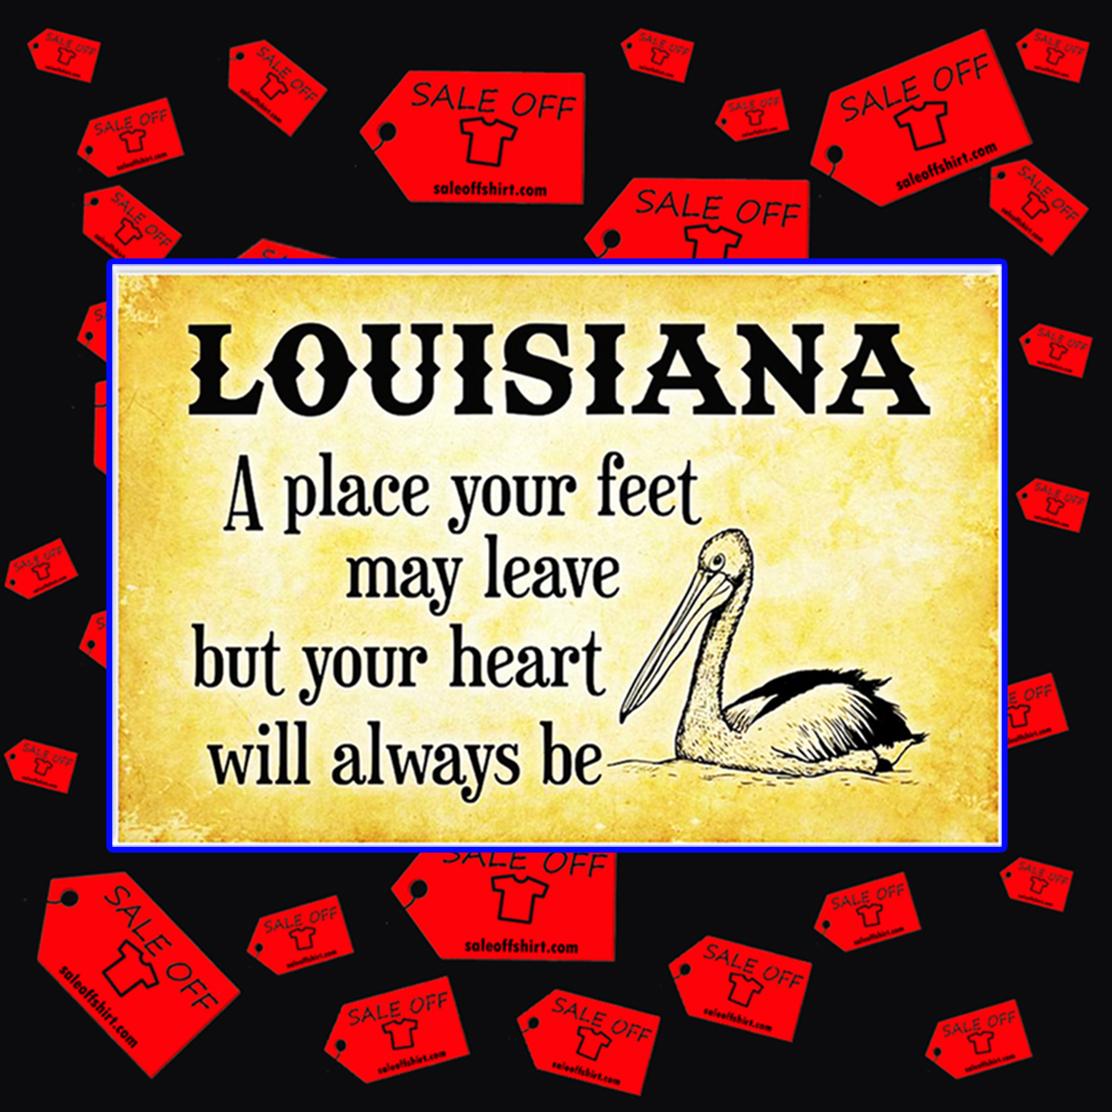 Louisiana a place your feet may leave but your heart will always be poster 36x24